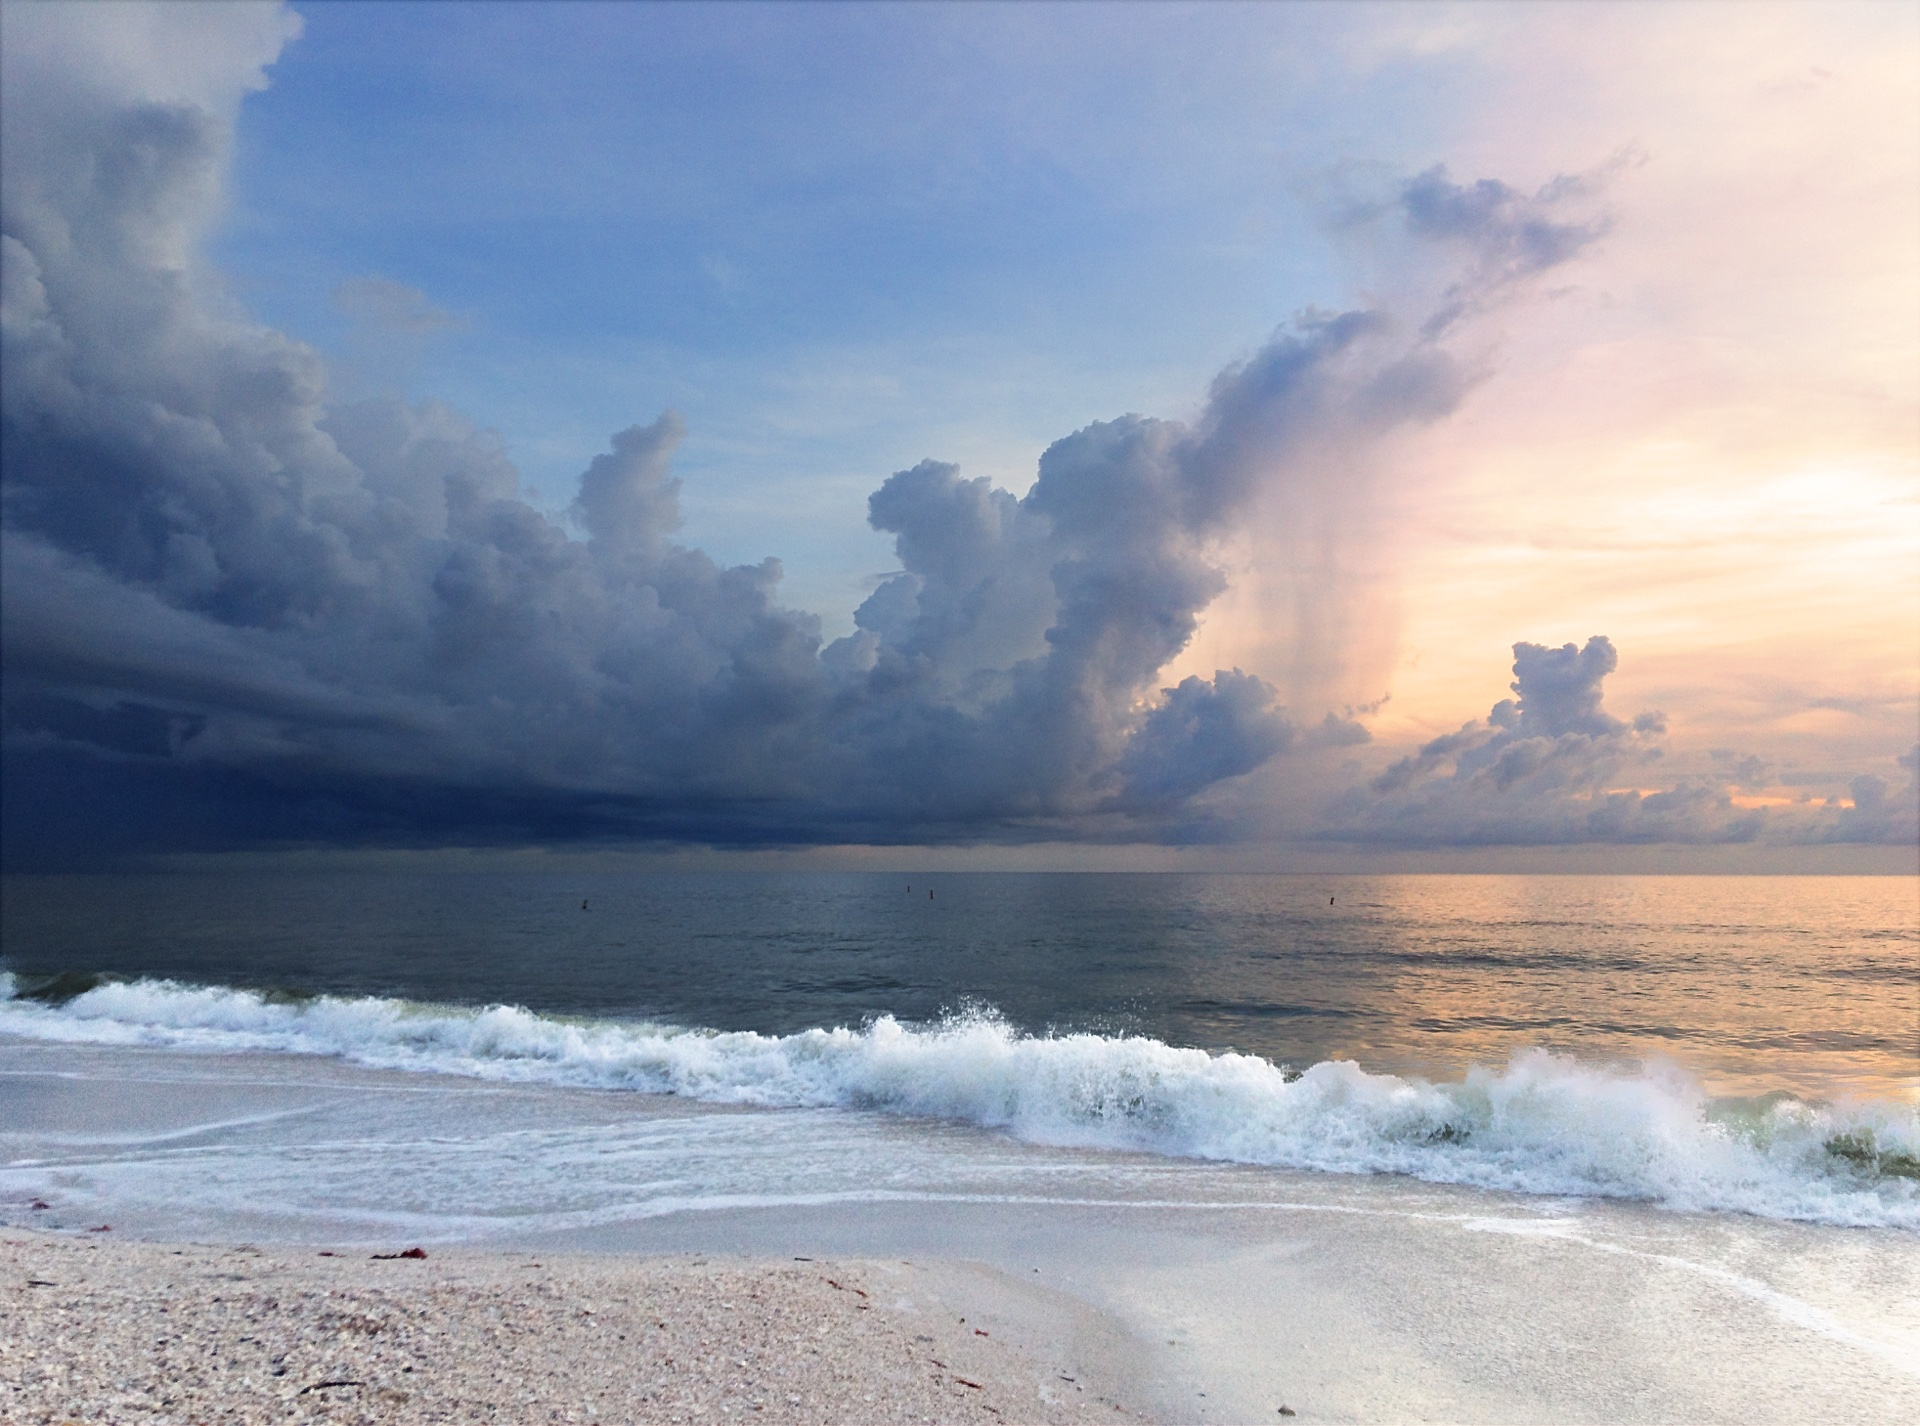 Sunset and storm over the Gulf of Mexico